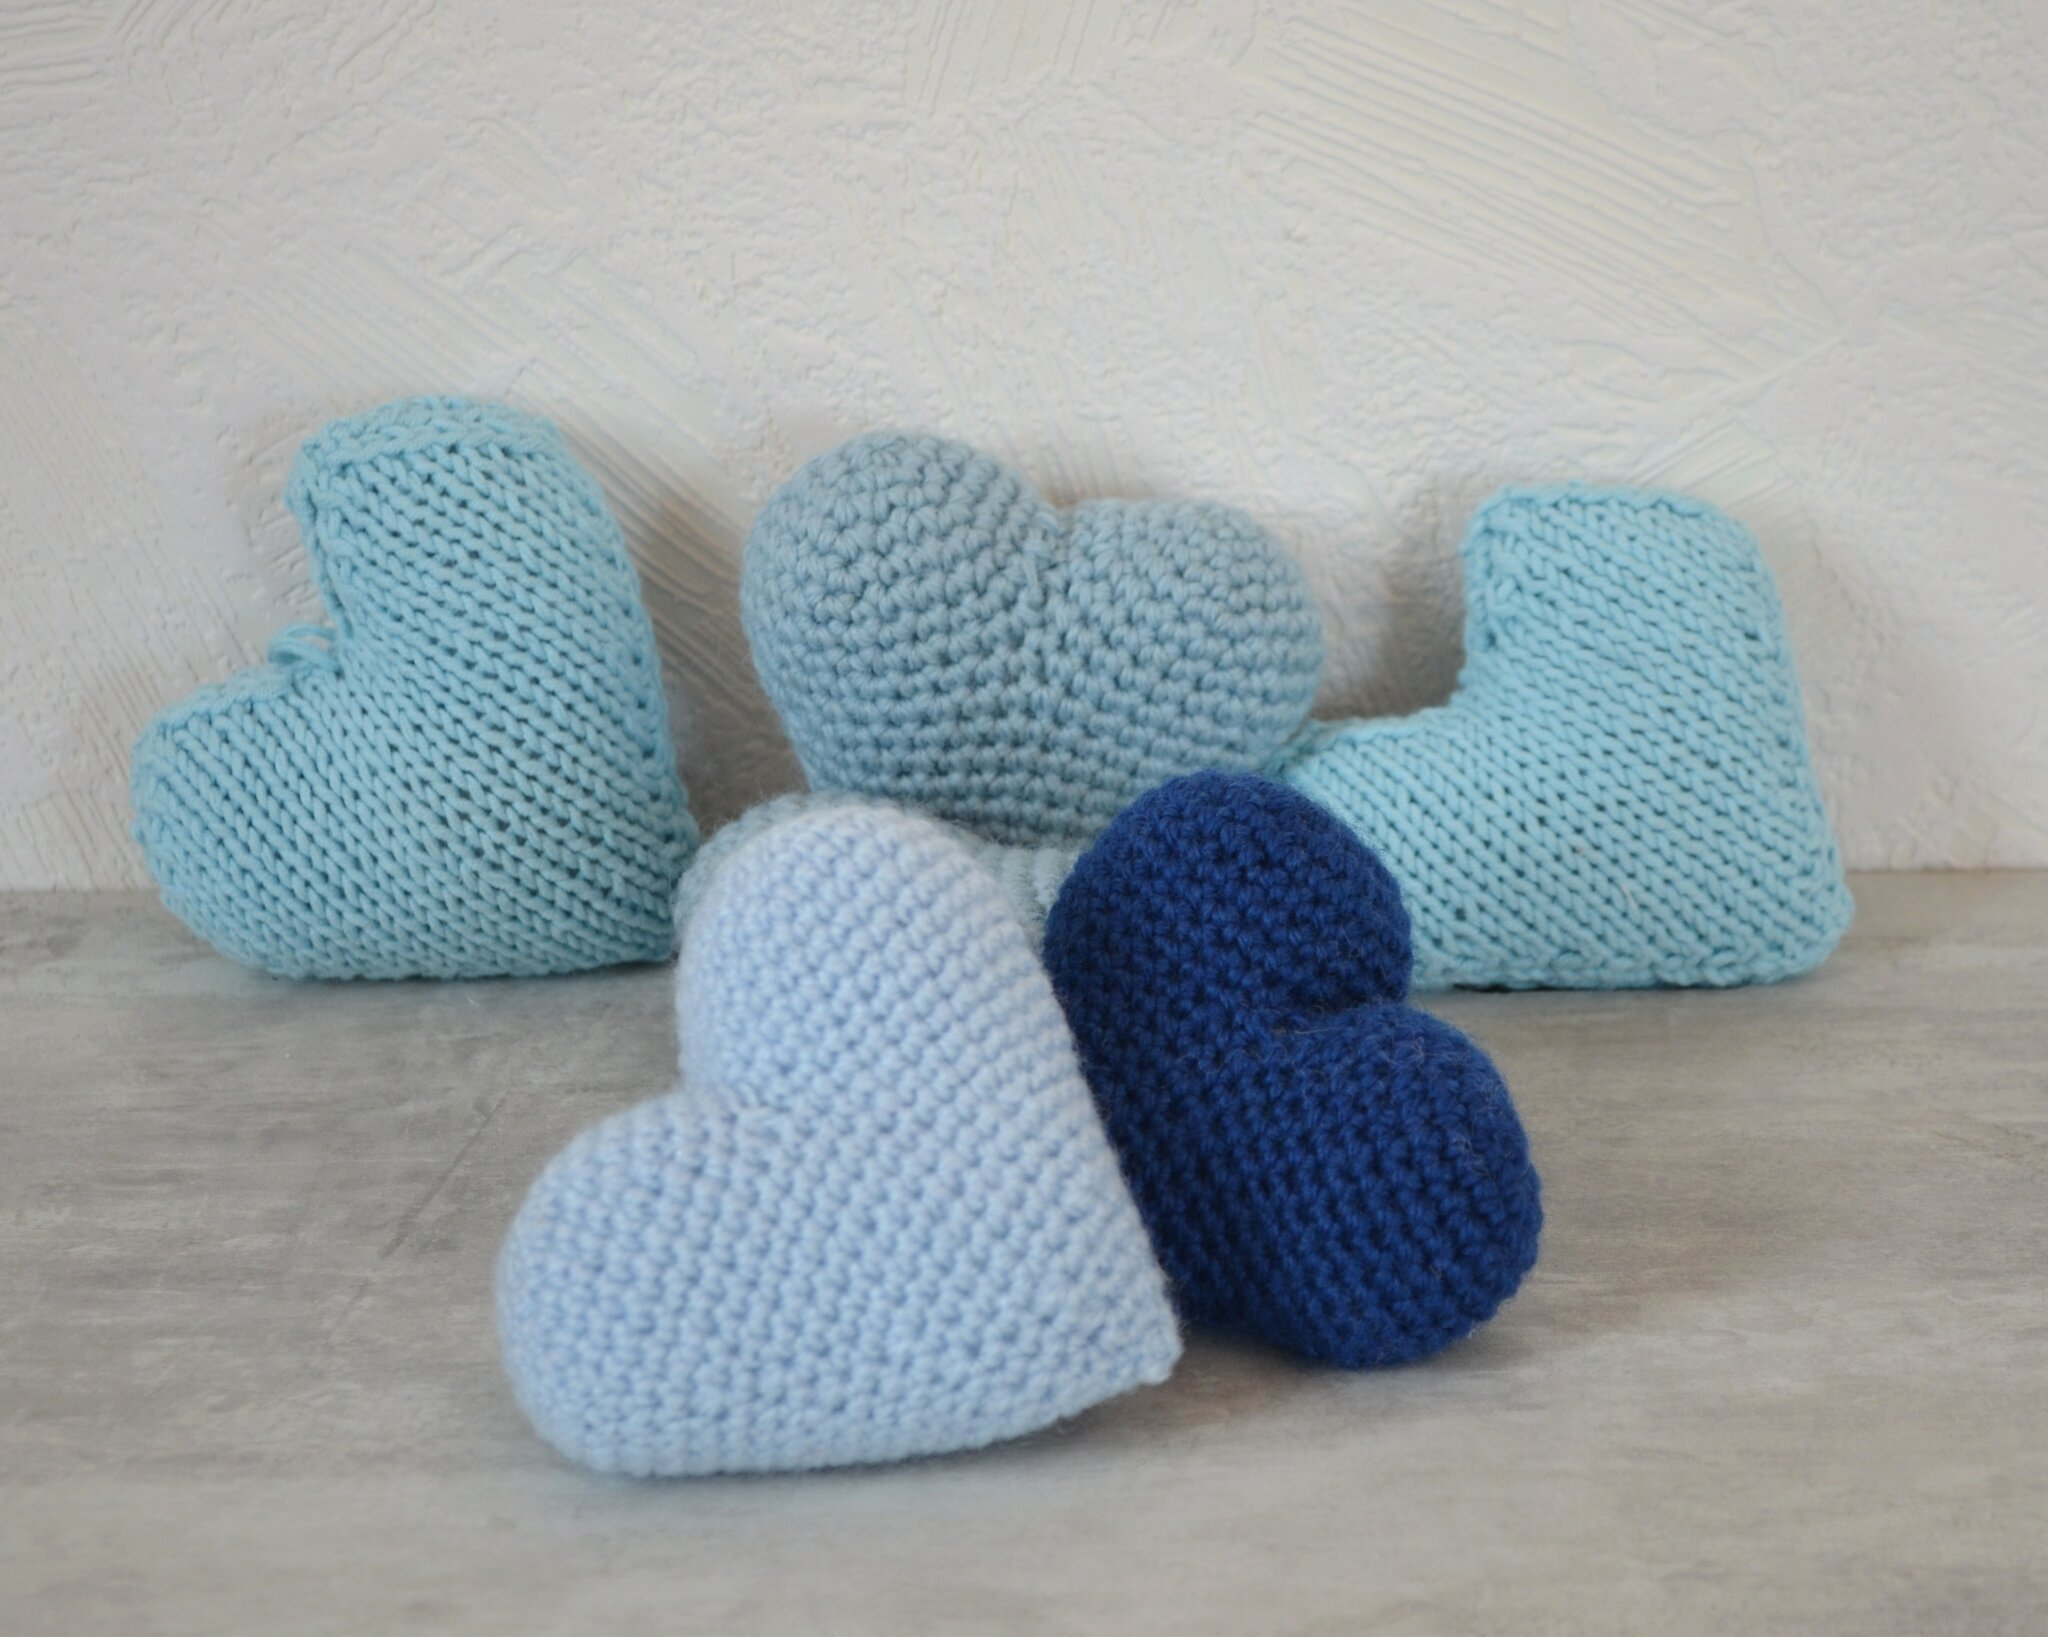 Coeur au crochet la chouette bricole Happy Blue Day